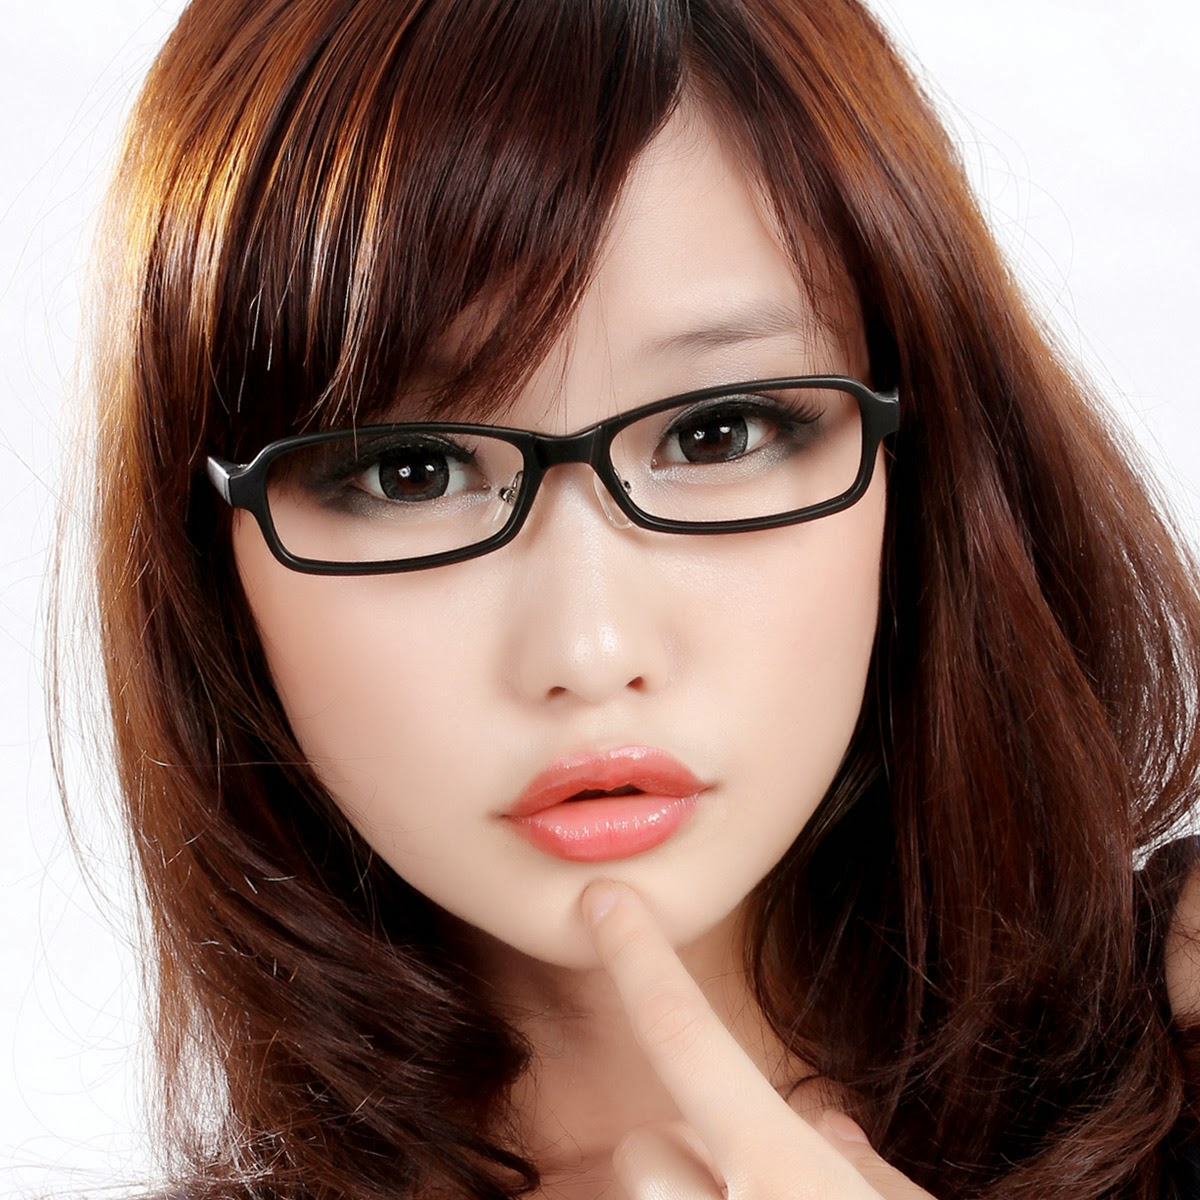 10 Most Stylish Women\'s Glasses Design New Pictures 2014 | Latest ...